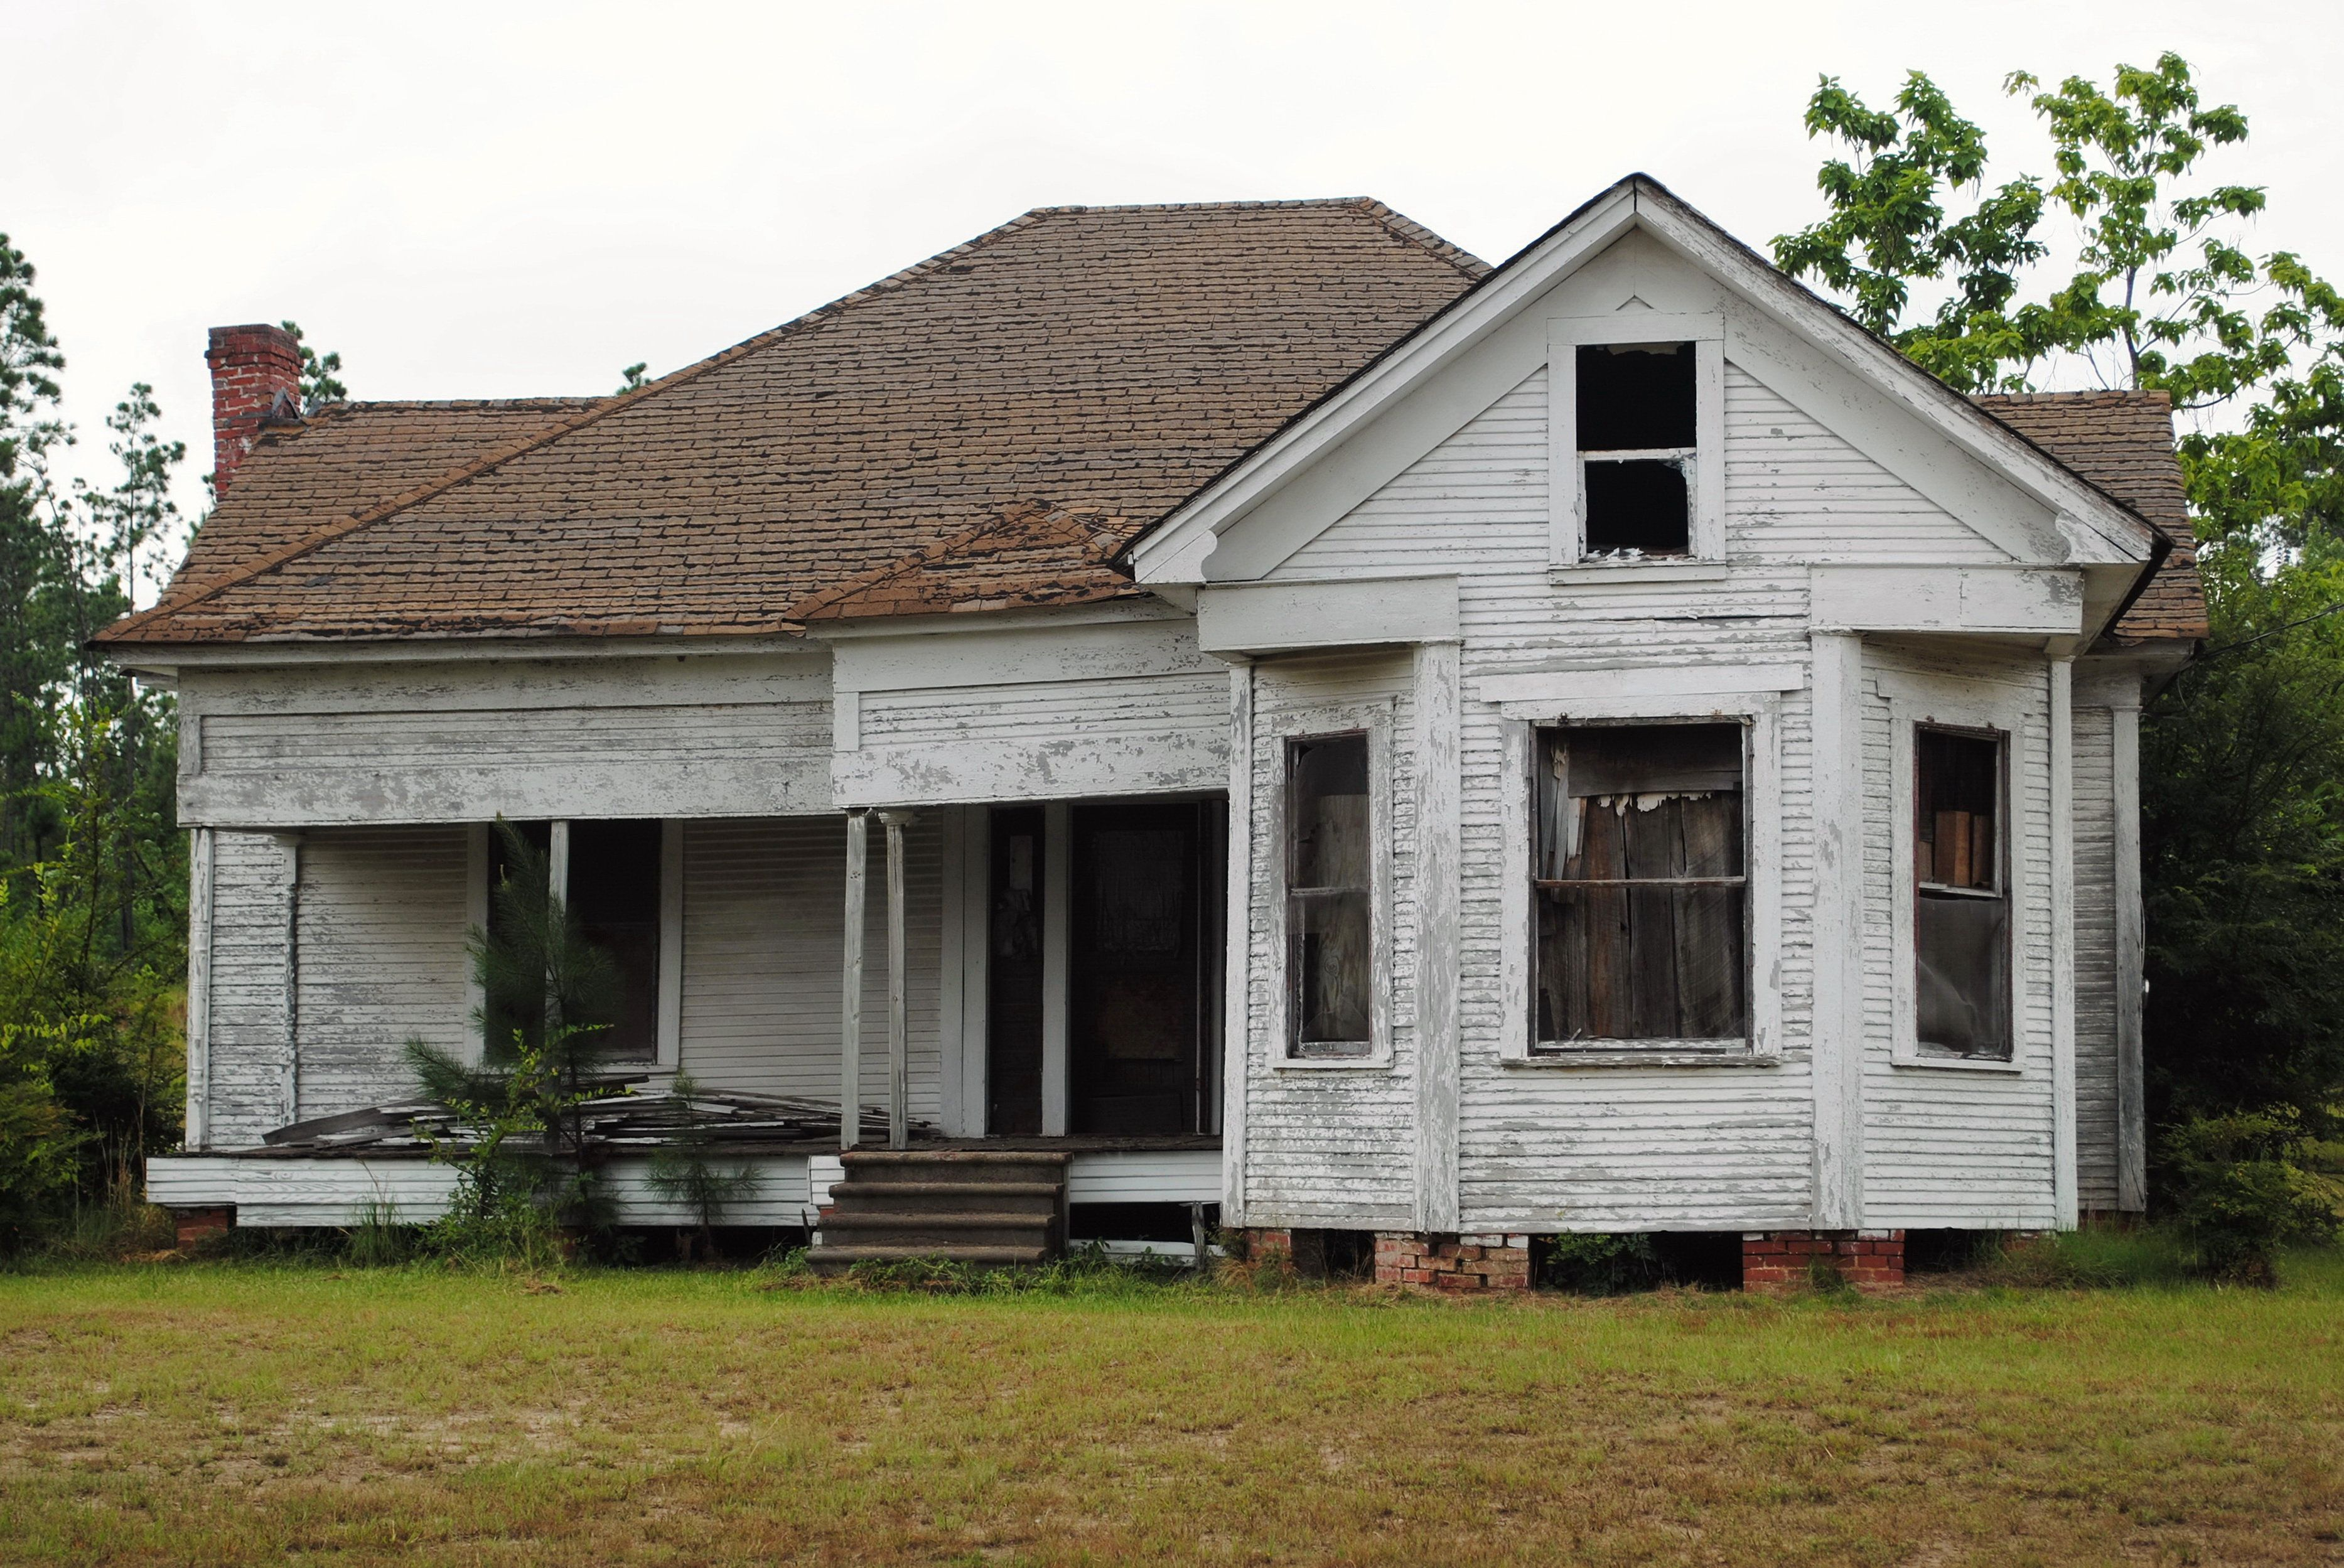 Abandoned Decrepit White House in rural Texas.